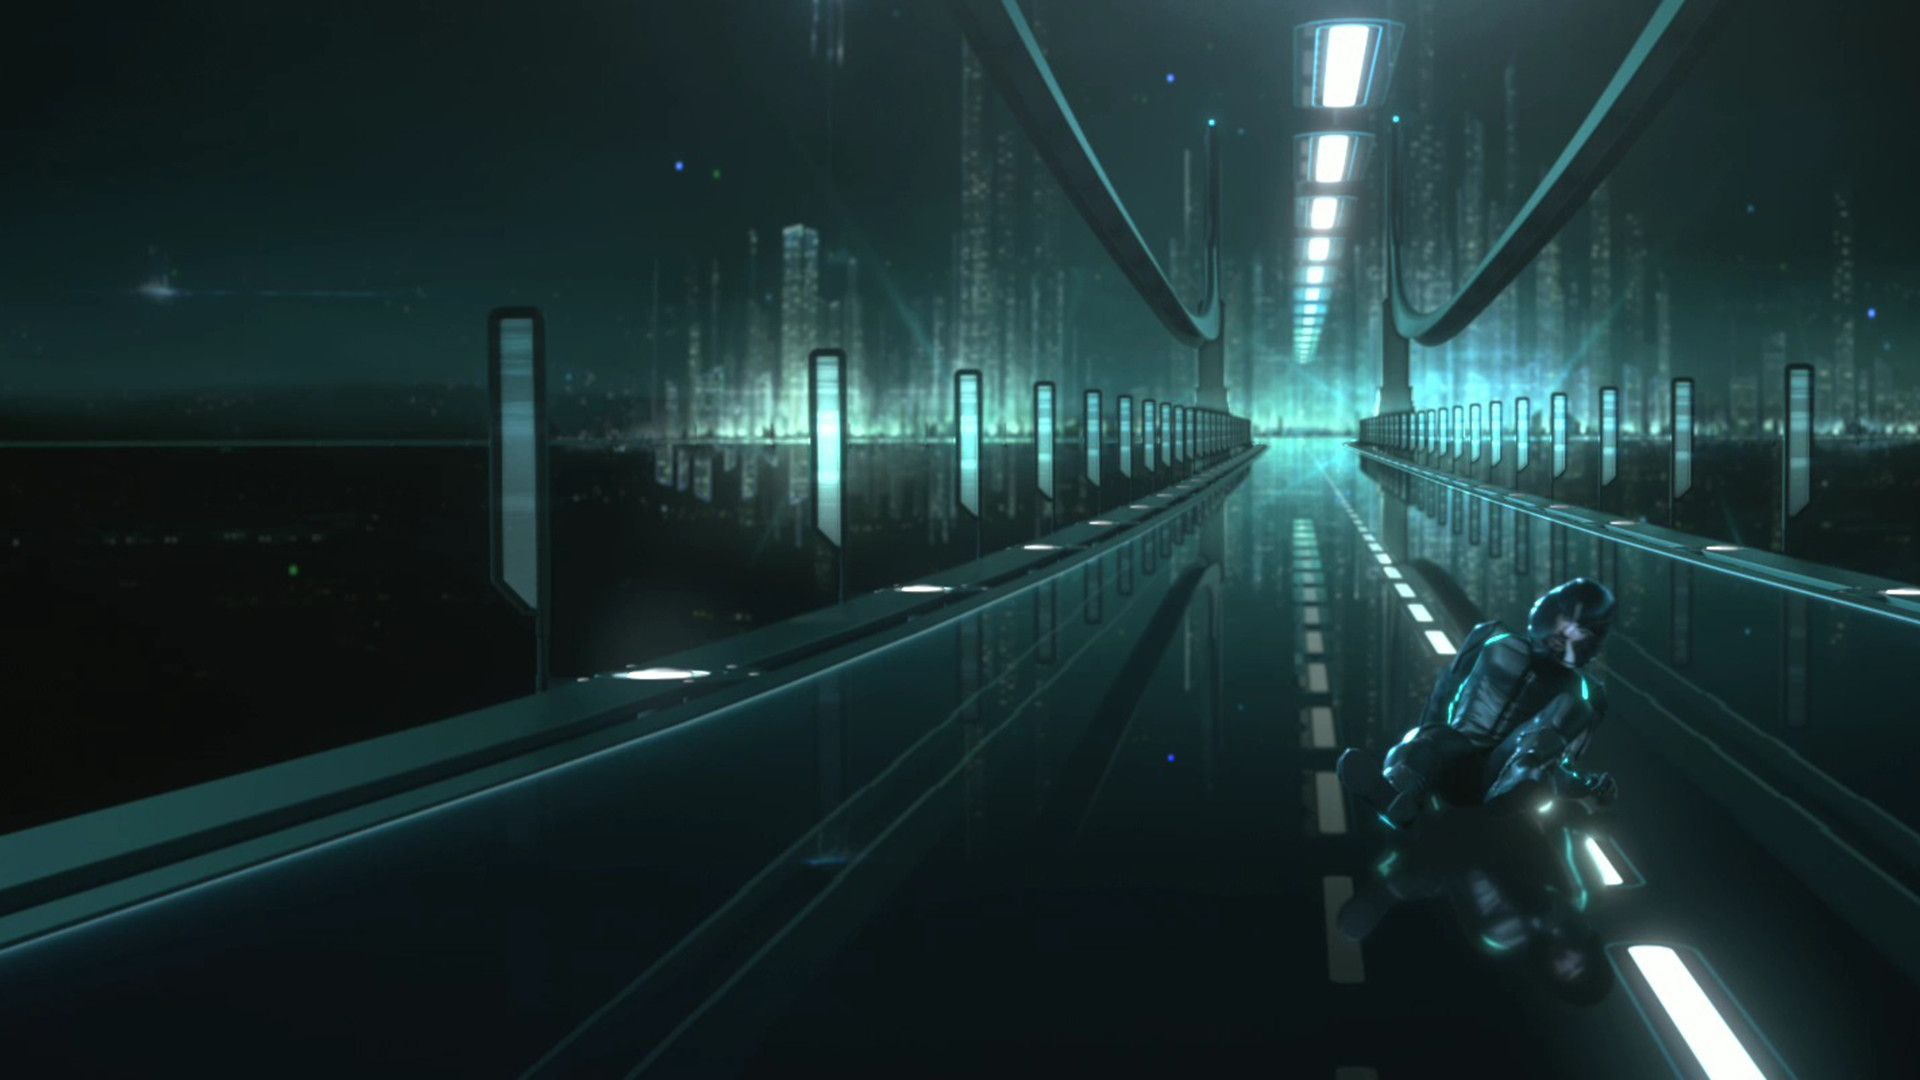 Tron city wallpapers top free tron city backgrounds - Legacy wallpaper ...